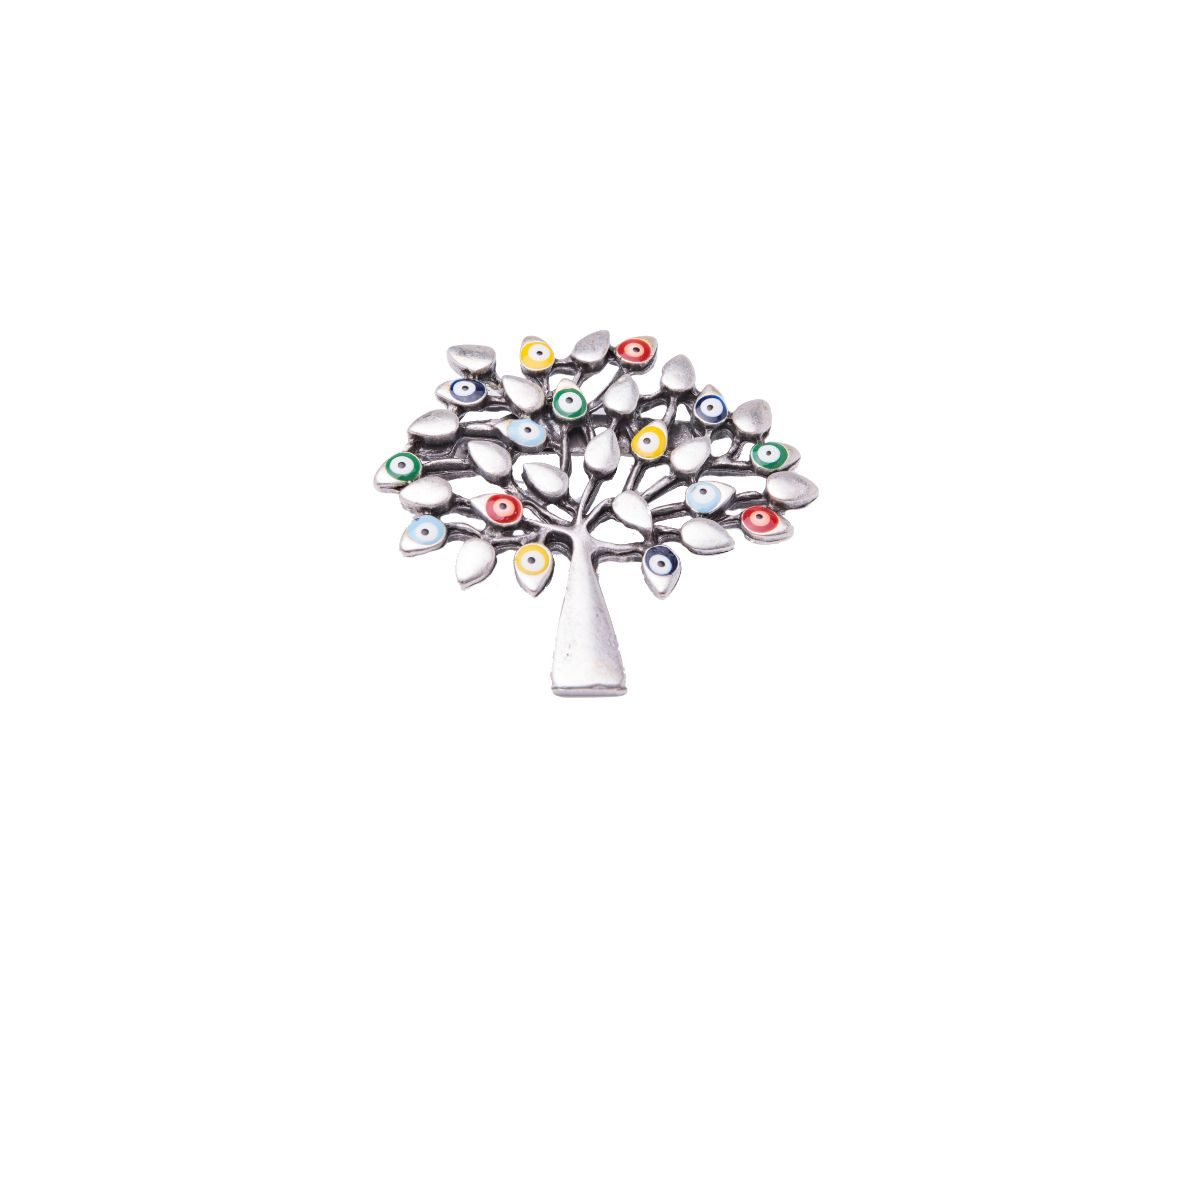 Éfeso silver zamak metal brooch in the shape of a tree with some of the leaves lacquered in colours.